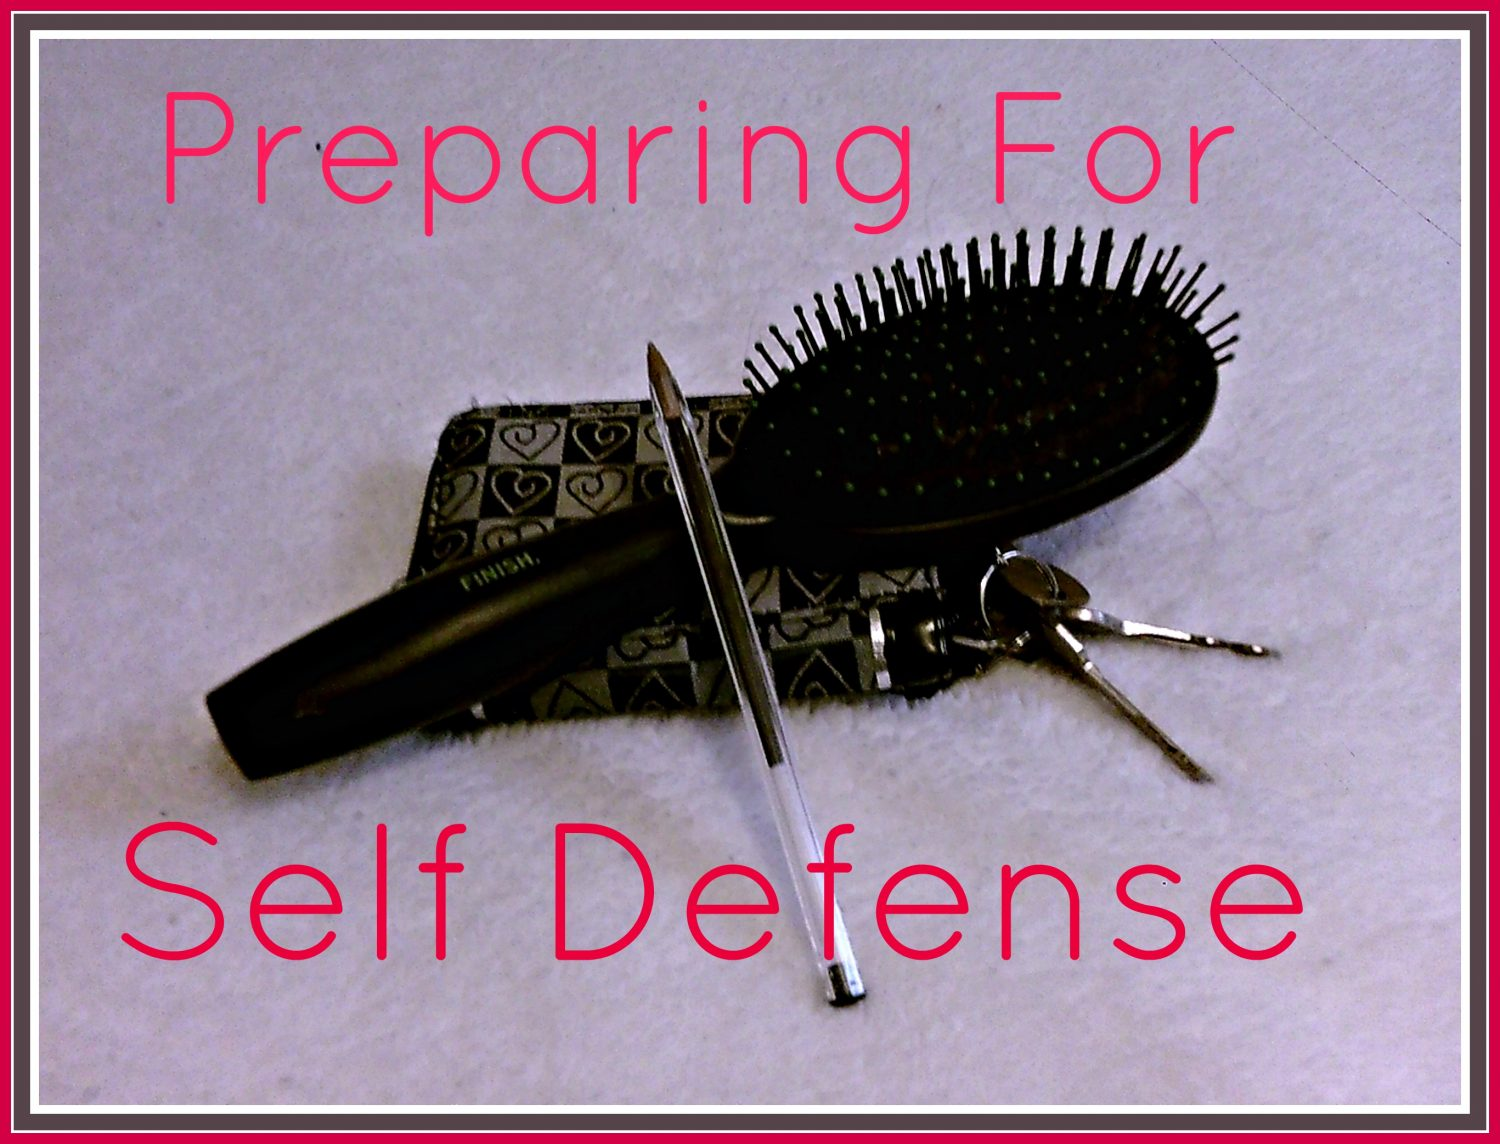 Self defense for women: tactics, strategy.